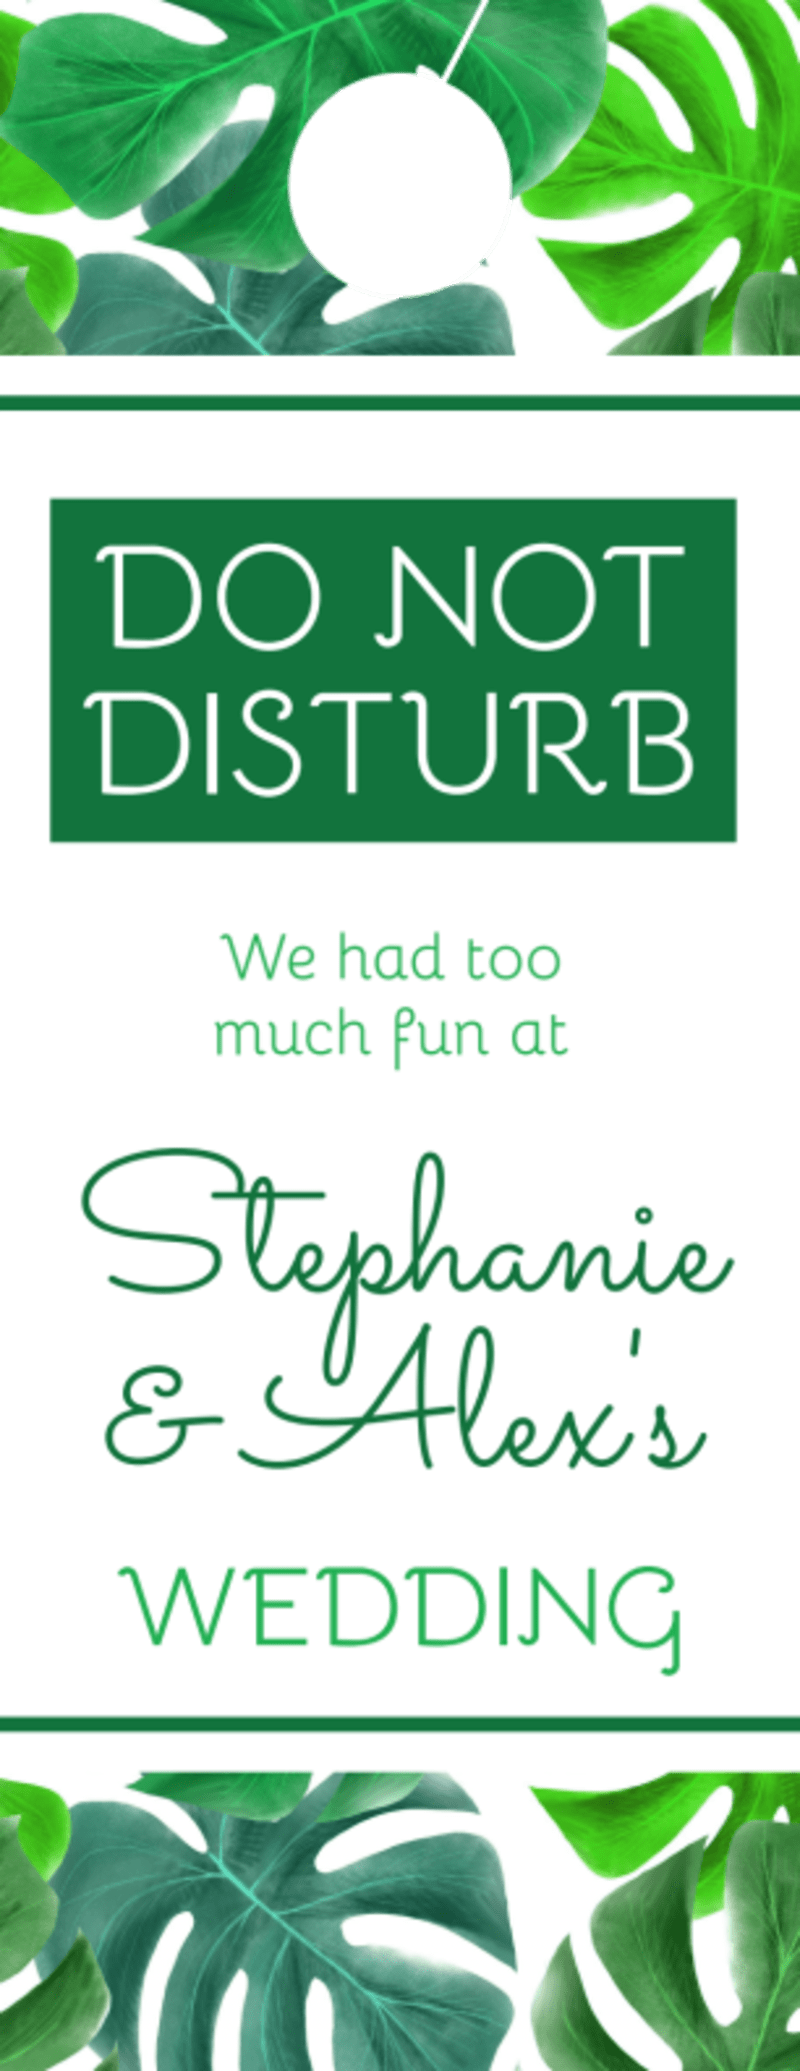 Green Wedding Door Hanger Template Preview 3